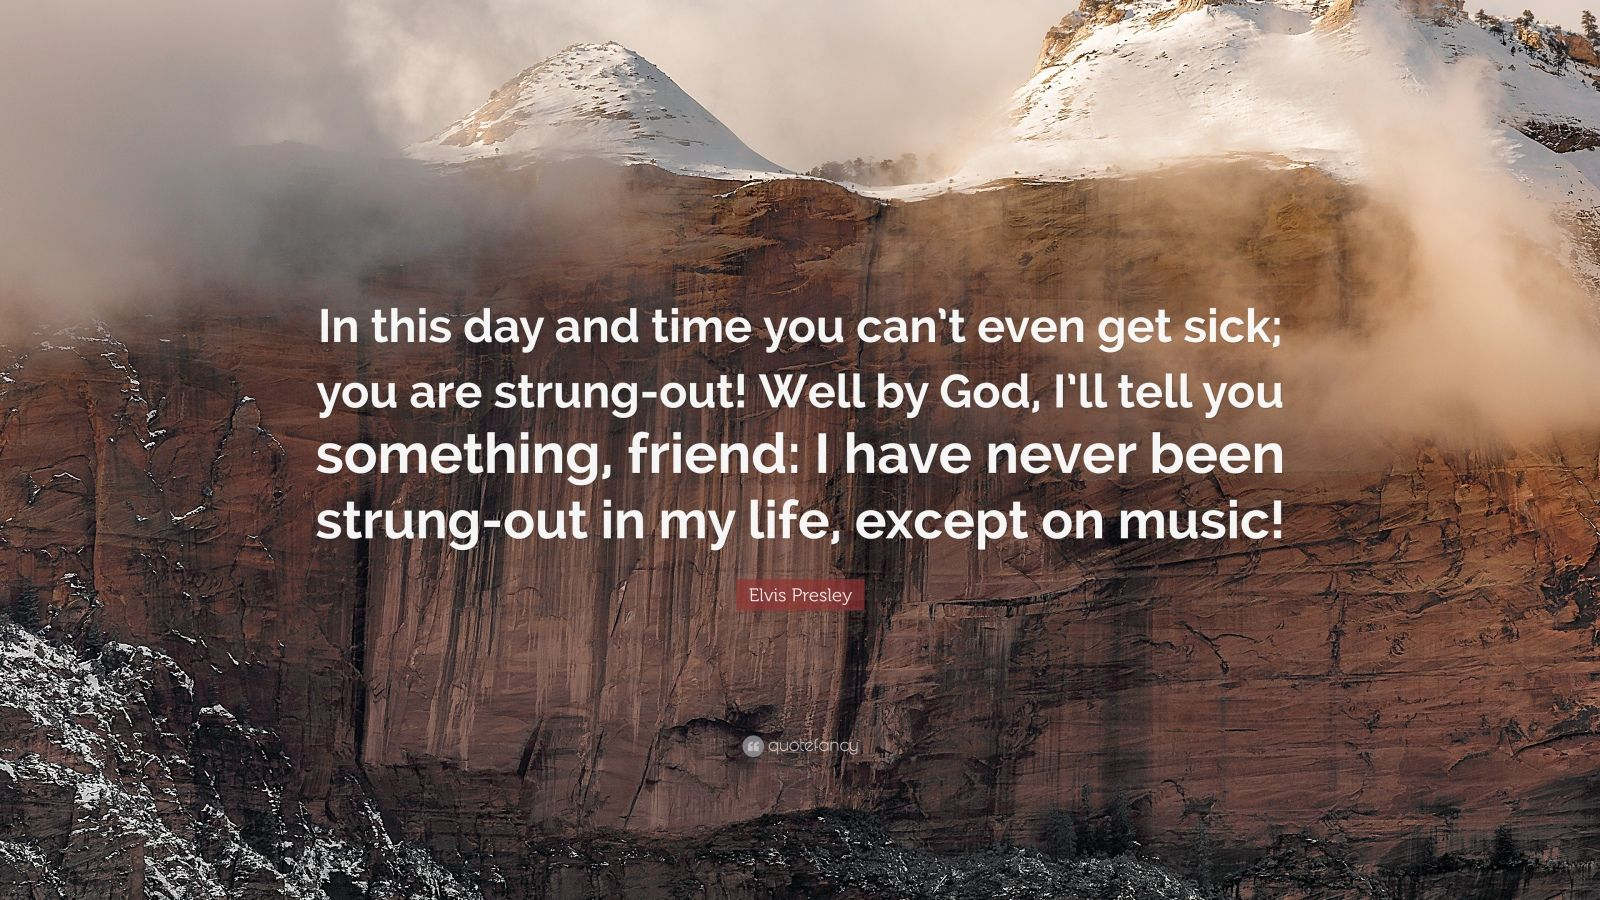 """Elvis Presley Quote: """"In this day and time you can't even get sick; you are strung-out! Well by God, I'll tell you something, friend: I have never been strung-out in my life, except on music!"""""""